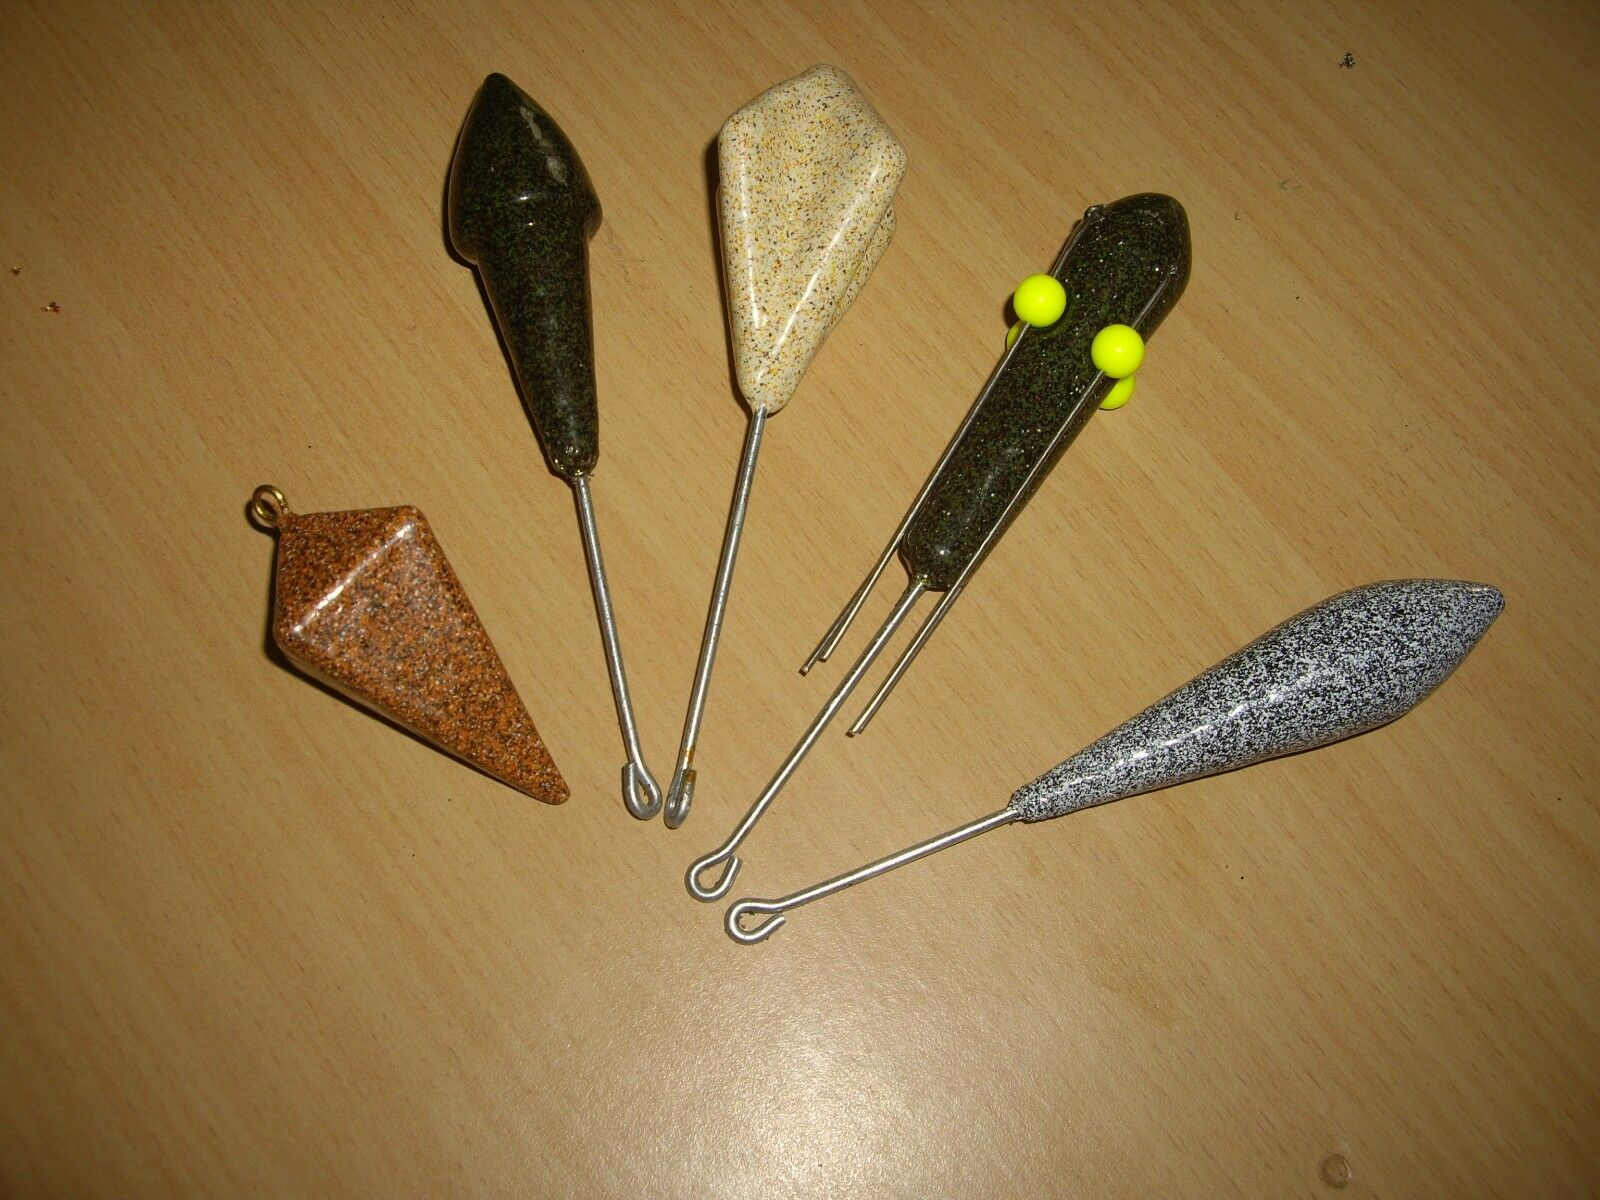 45 plombs surfcasting 100110120130150 g